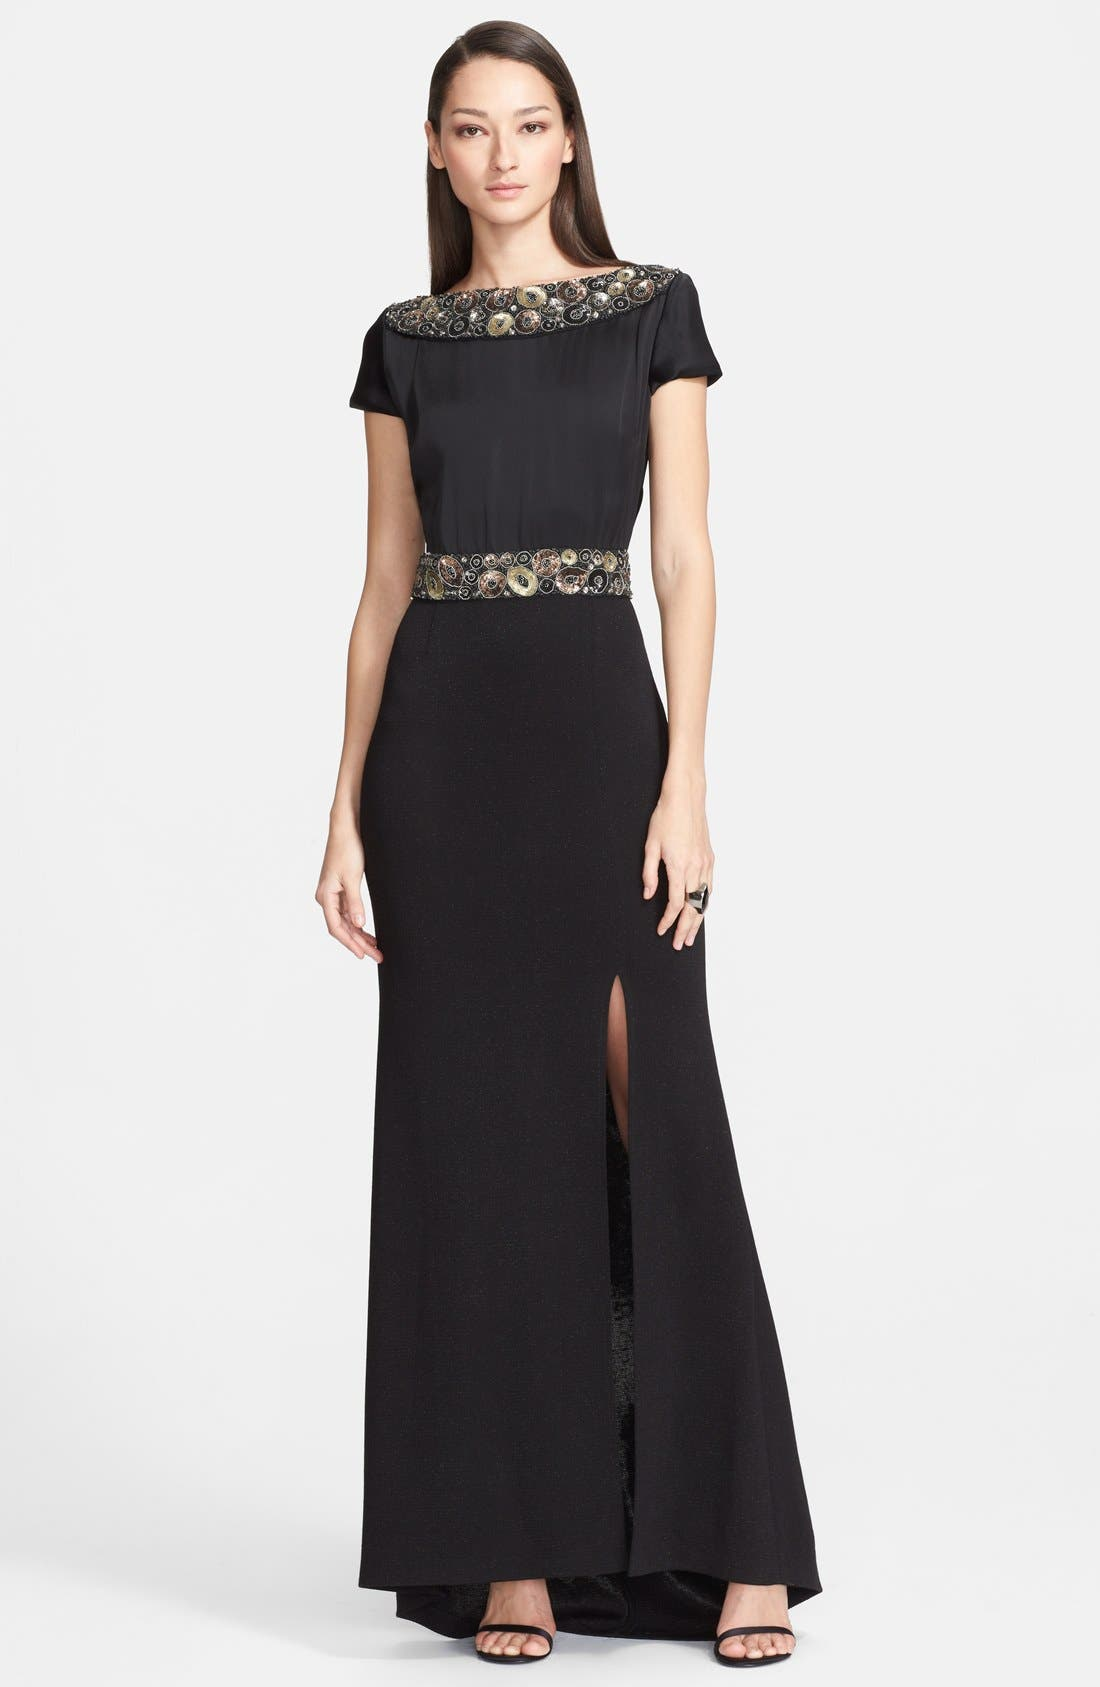 Main Image - St. John Collection Embellished Liquid Crepe & Shimmer Milano Knit Gown